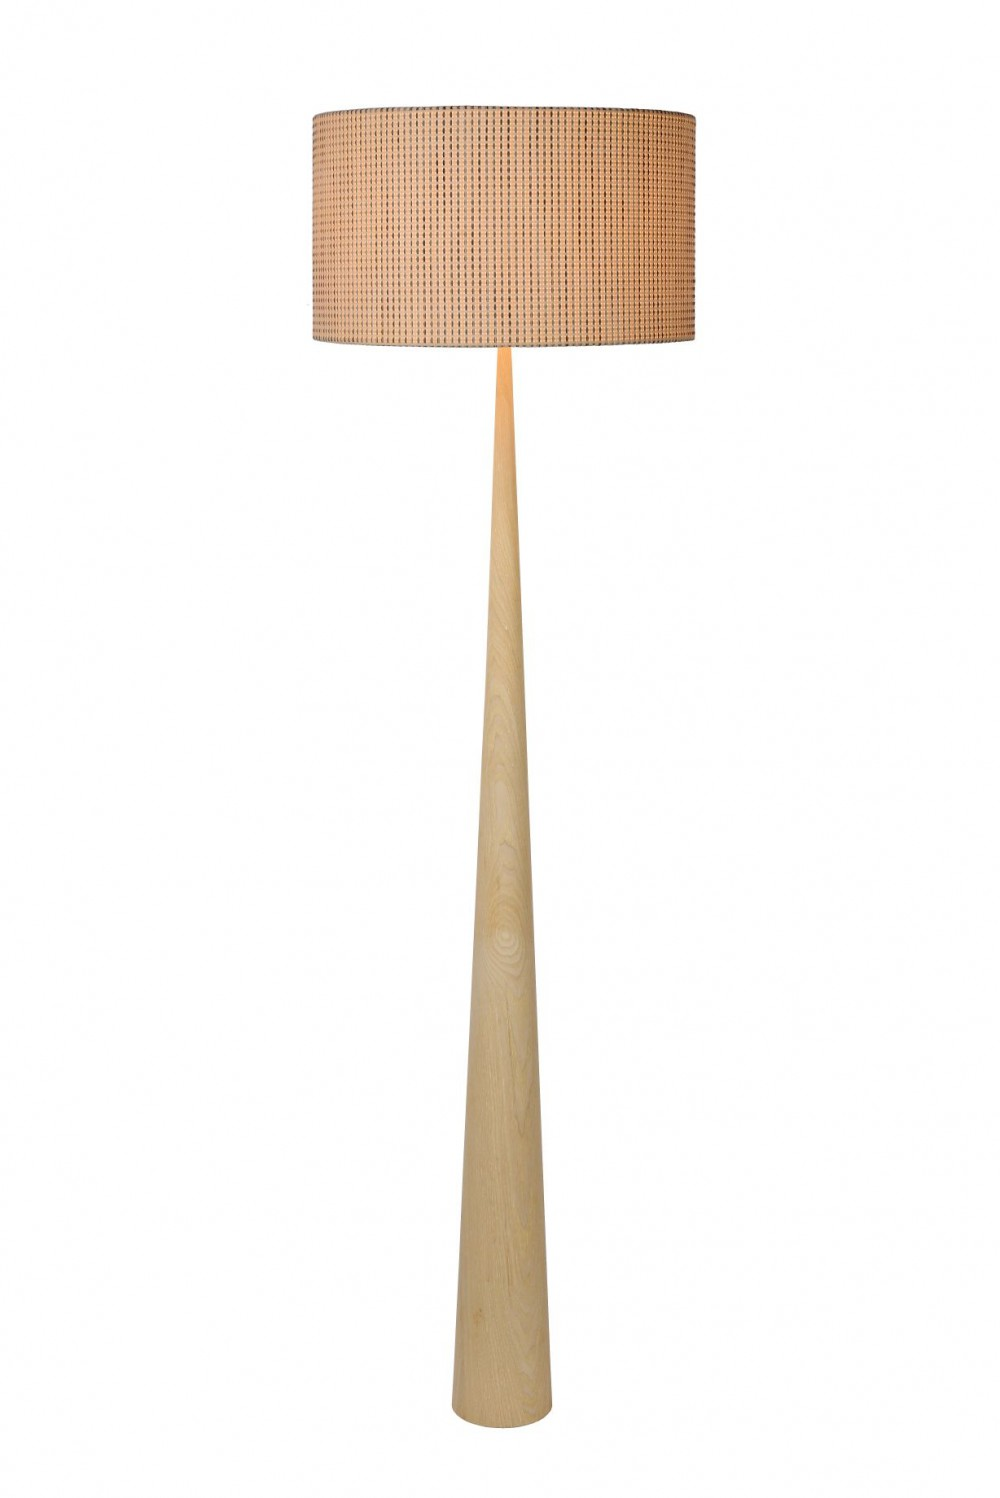 Stehleuchte Stehlampe Holz Hell Hohe 177 Cm